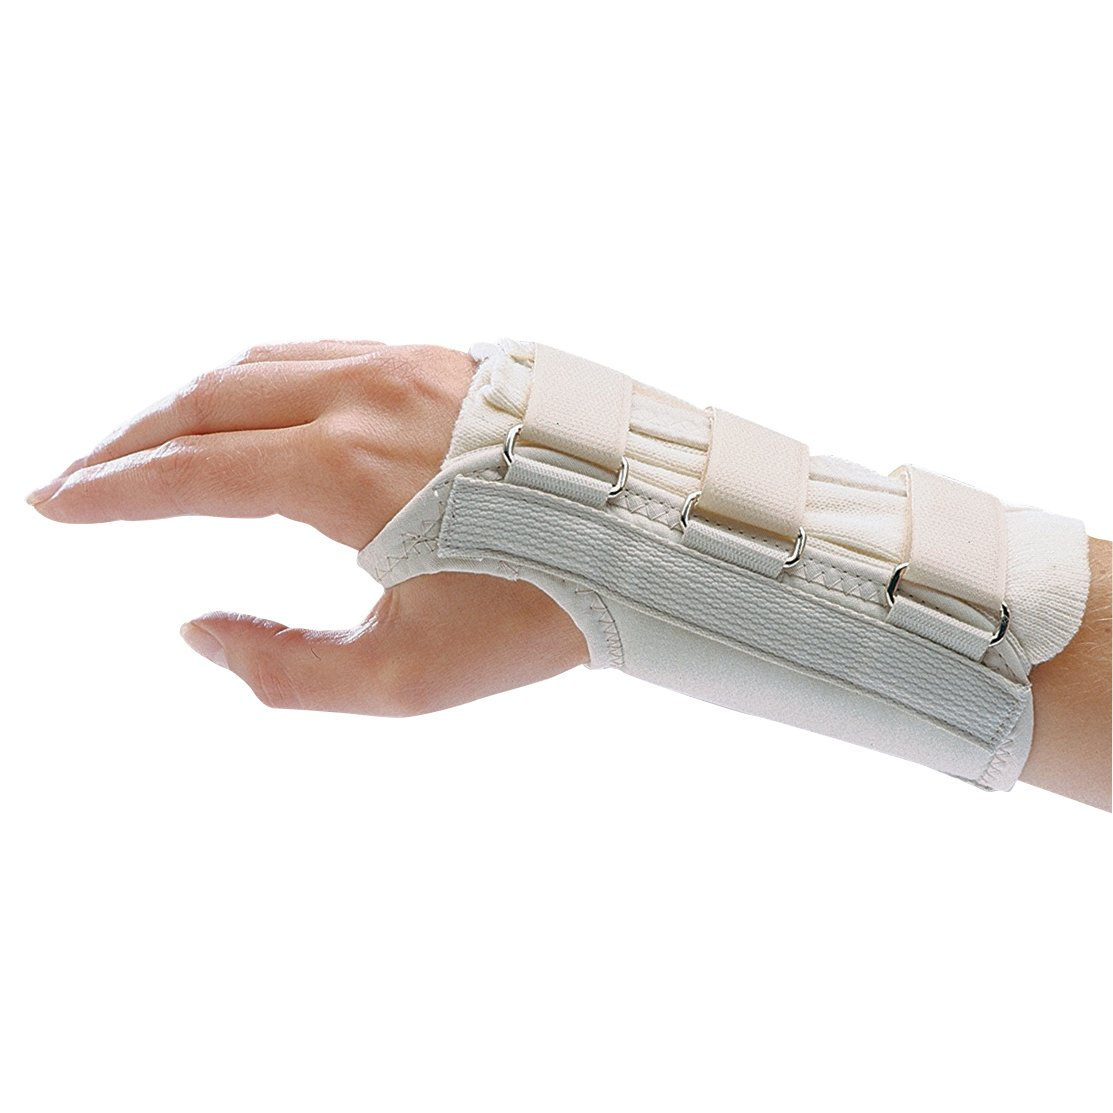 Rolyan D-Ring Right Wrist Brace, Size Large Fits Wrists 7.75''-8.5'', 7.5'' Regular Length Support, Beige Brace with Straps and D-Ring Connectors to Secure and Stabilize Hands and Wrists